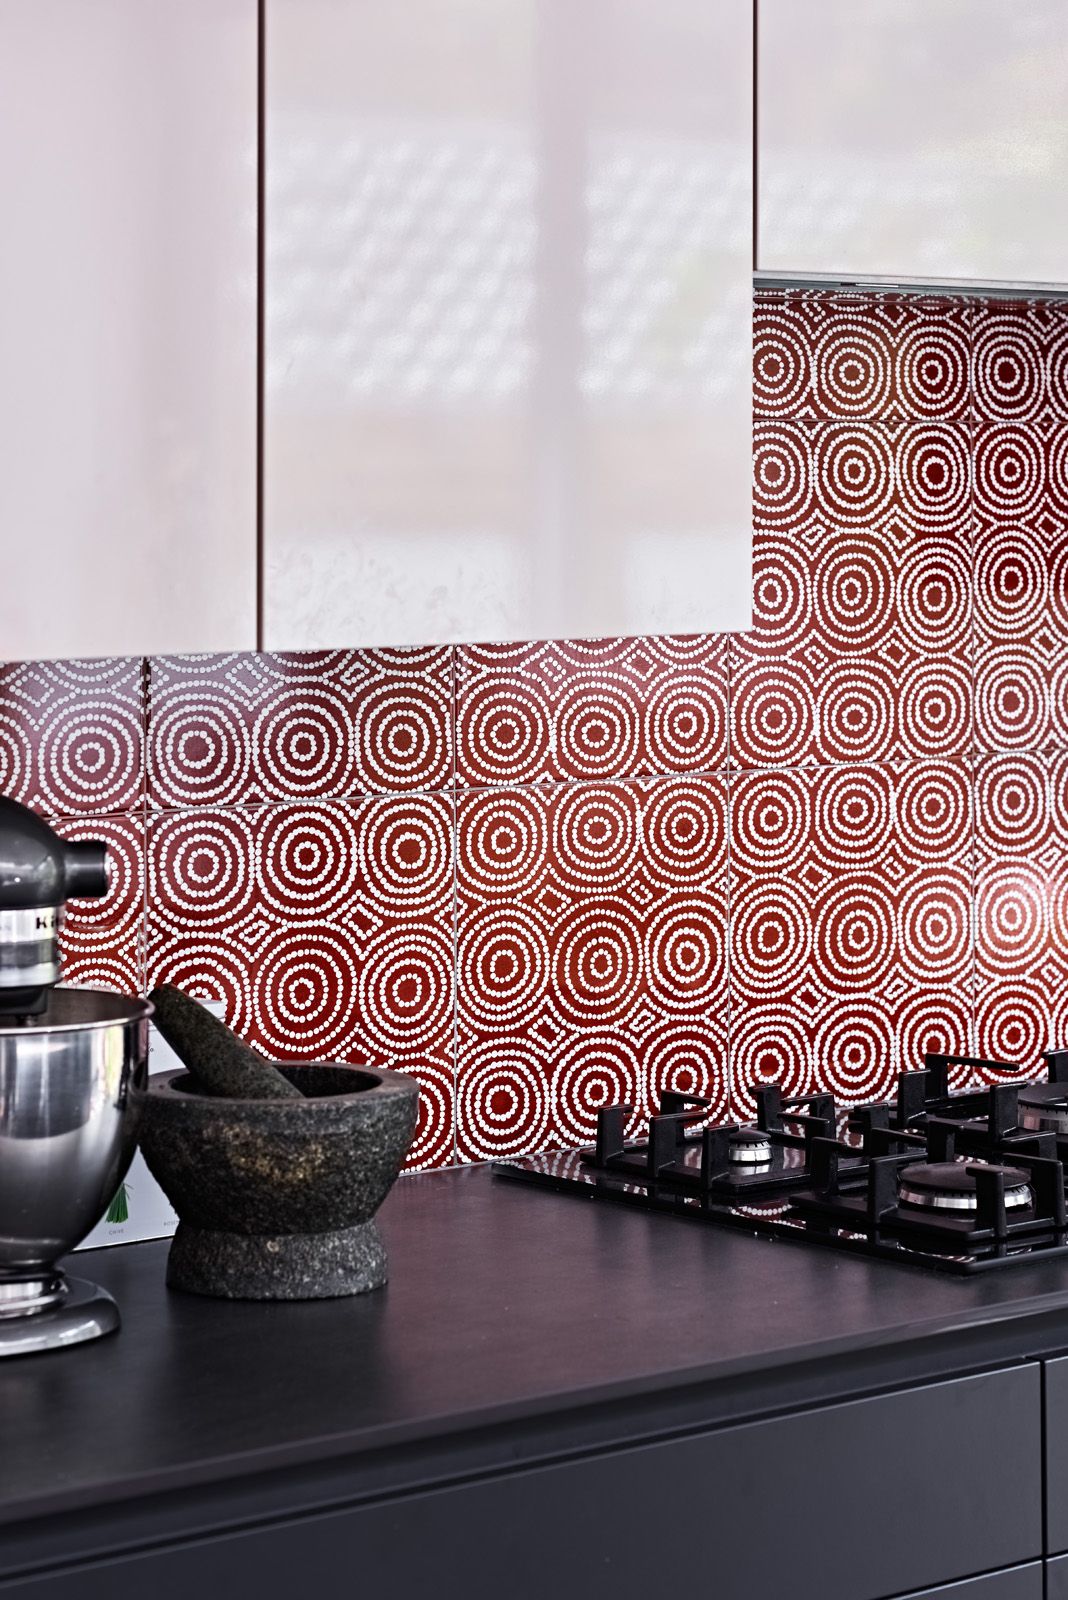 Our award-winning Bush Onion 1 ceramic wall tile  as a kitchen splash back, adding a subtle element of ochre red & geometry to the clean lines of this contemporary minimalist kitchen design, creating a space with a unique elegance and simplicity.